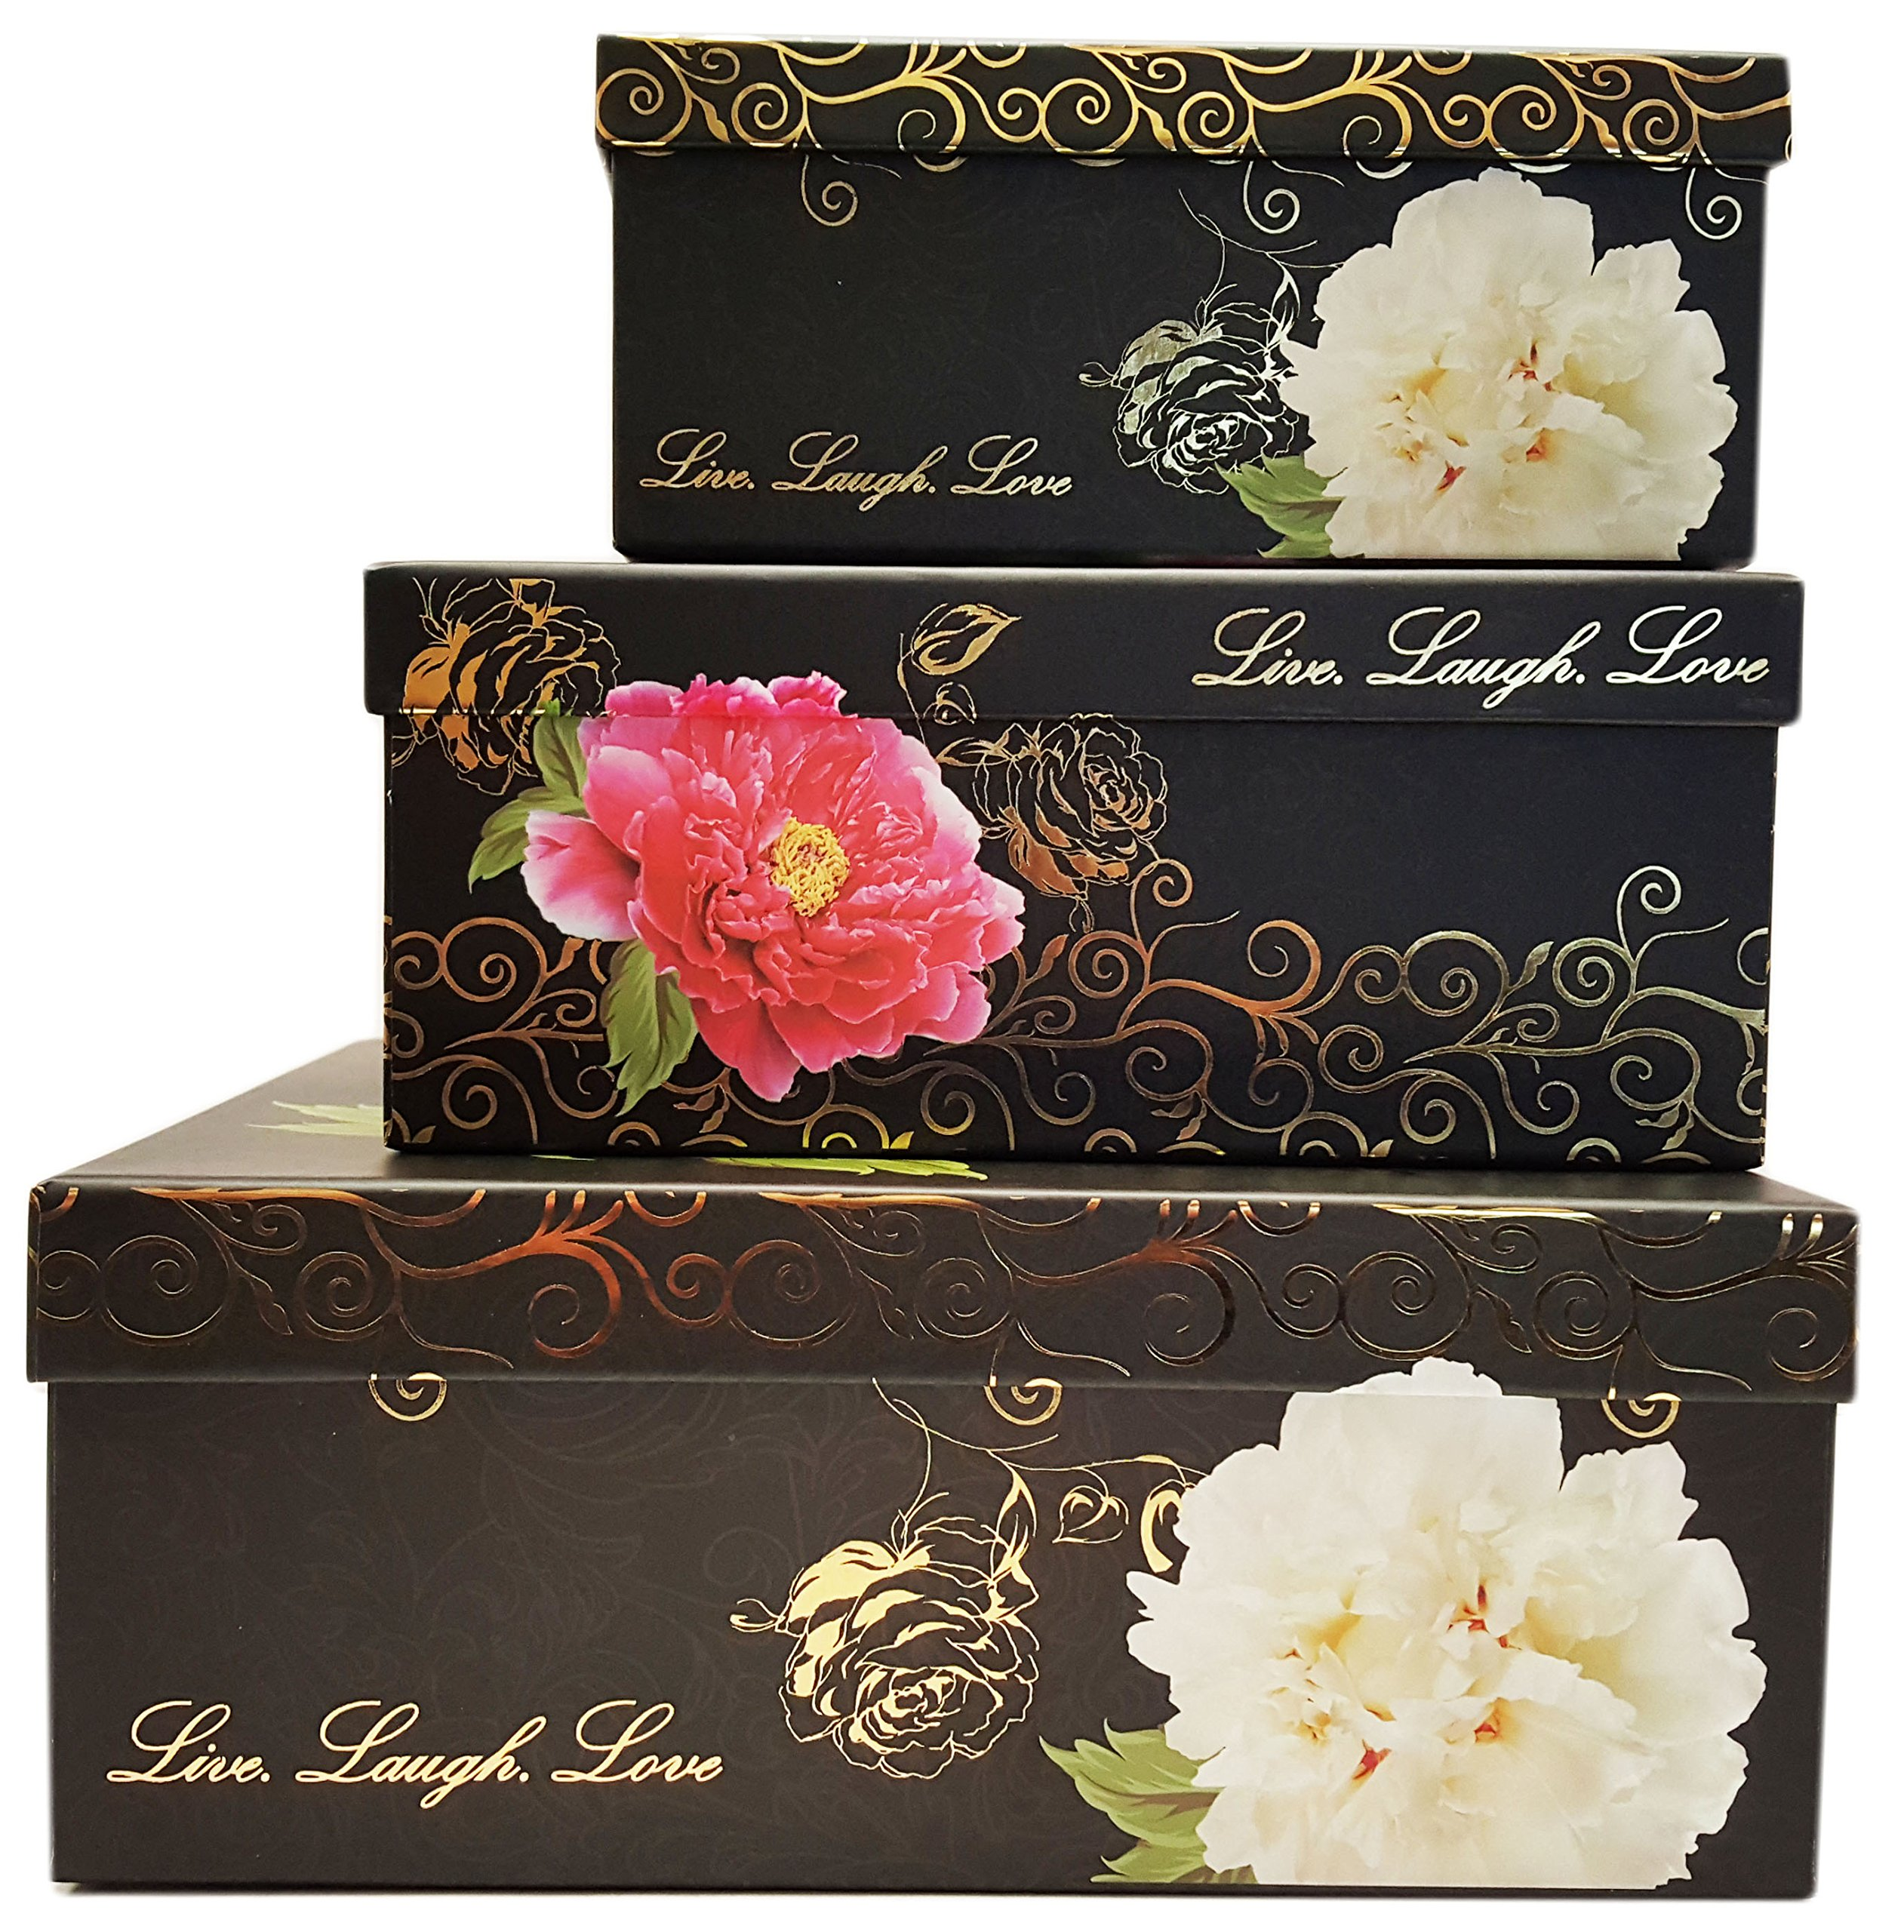 Alef Elegant Decorative Themed Nesting Gift Boxes -3 Boxes- Nesting Boxes Beautifully Themed and Decorated - Perfect for Gifts or Simple Decoration Around the House! (Black & Gold Flower)